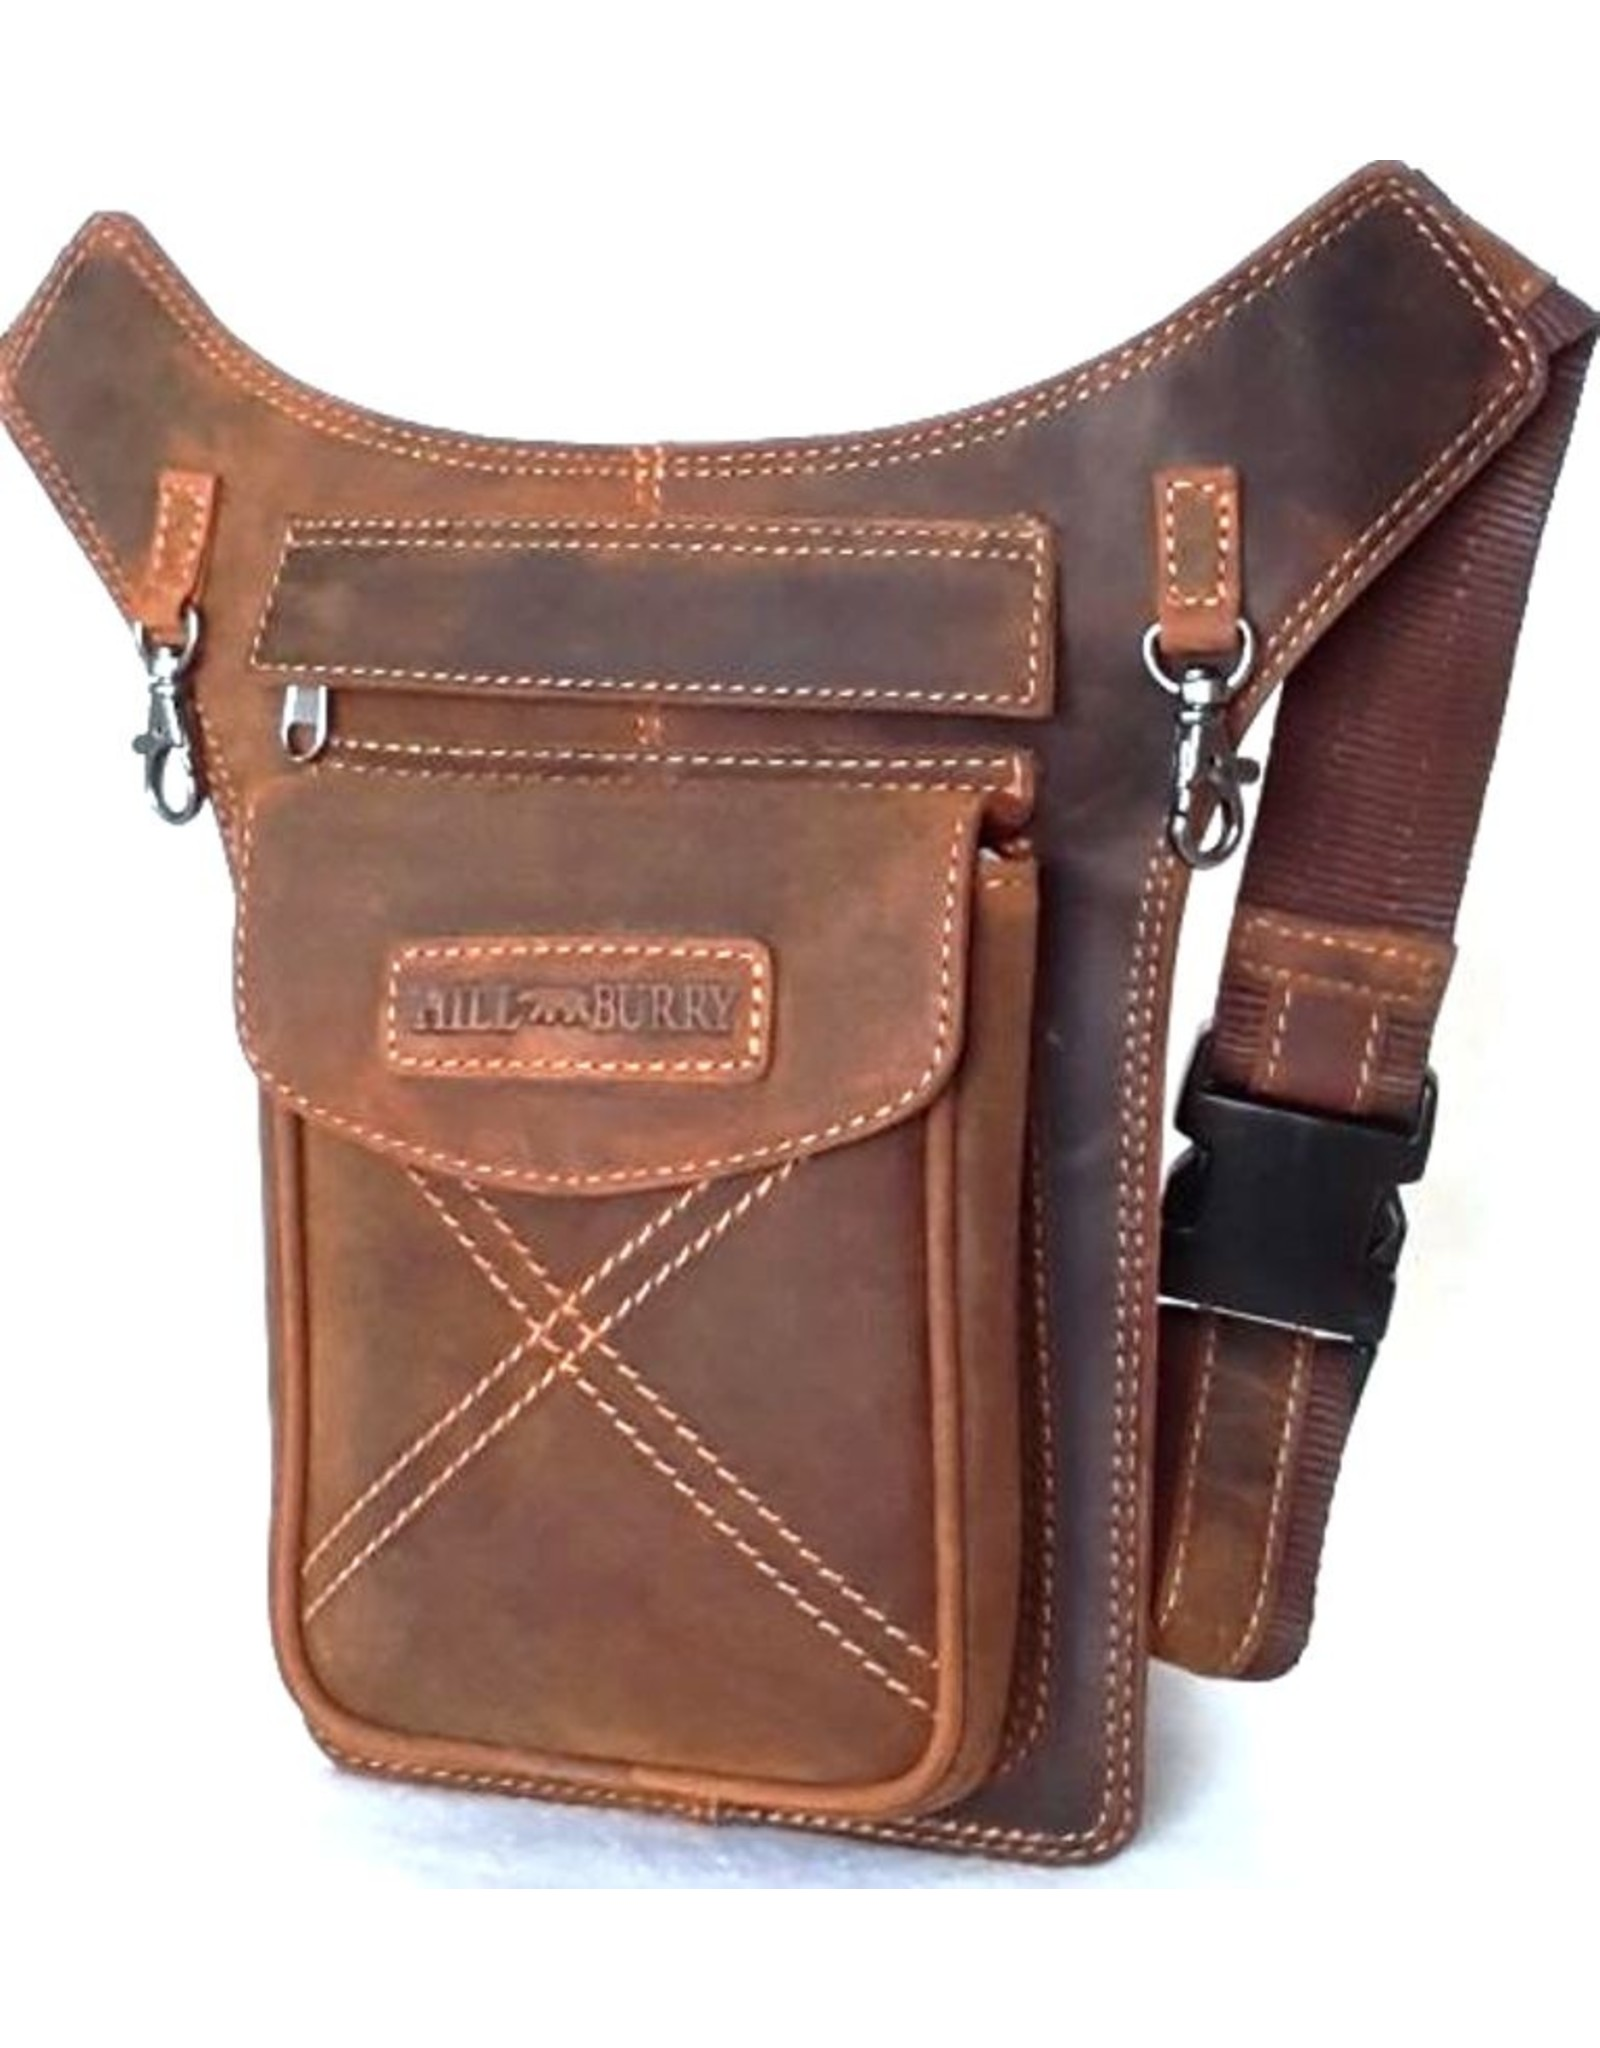 HillBurry Leather Festival bags, waist bags and belt bags - HillBurry hip bag from tanned leather mango tan